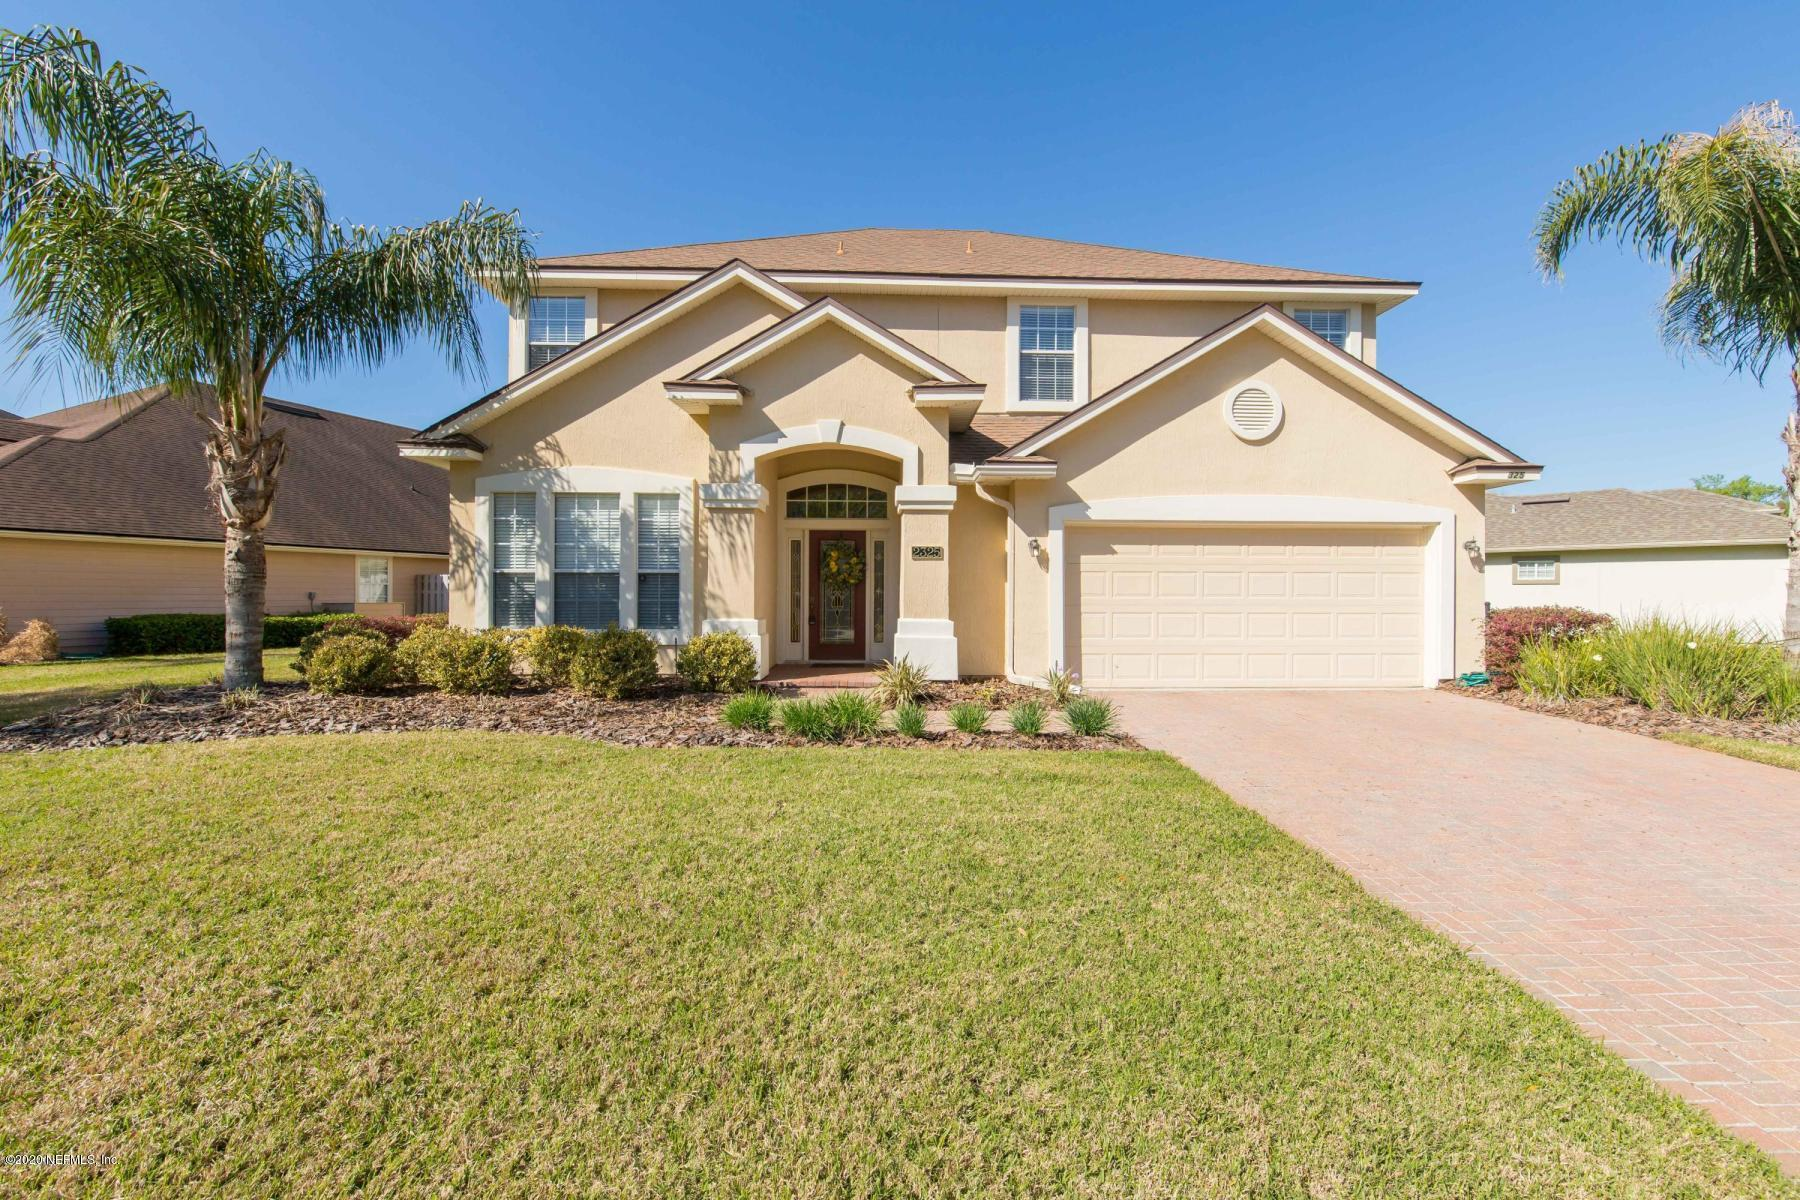 2325 COUNTRY SIDE, ORANGE PARK, FLORIDA 32003, 3 Bedrooms Bedrooms, ,2 BathroomsBathrooms,Residential,For sale,COUNTRY SIDE,1044749